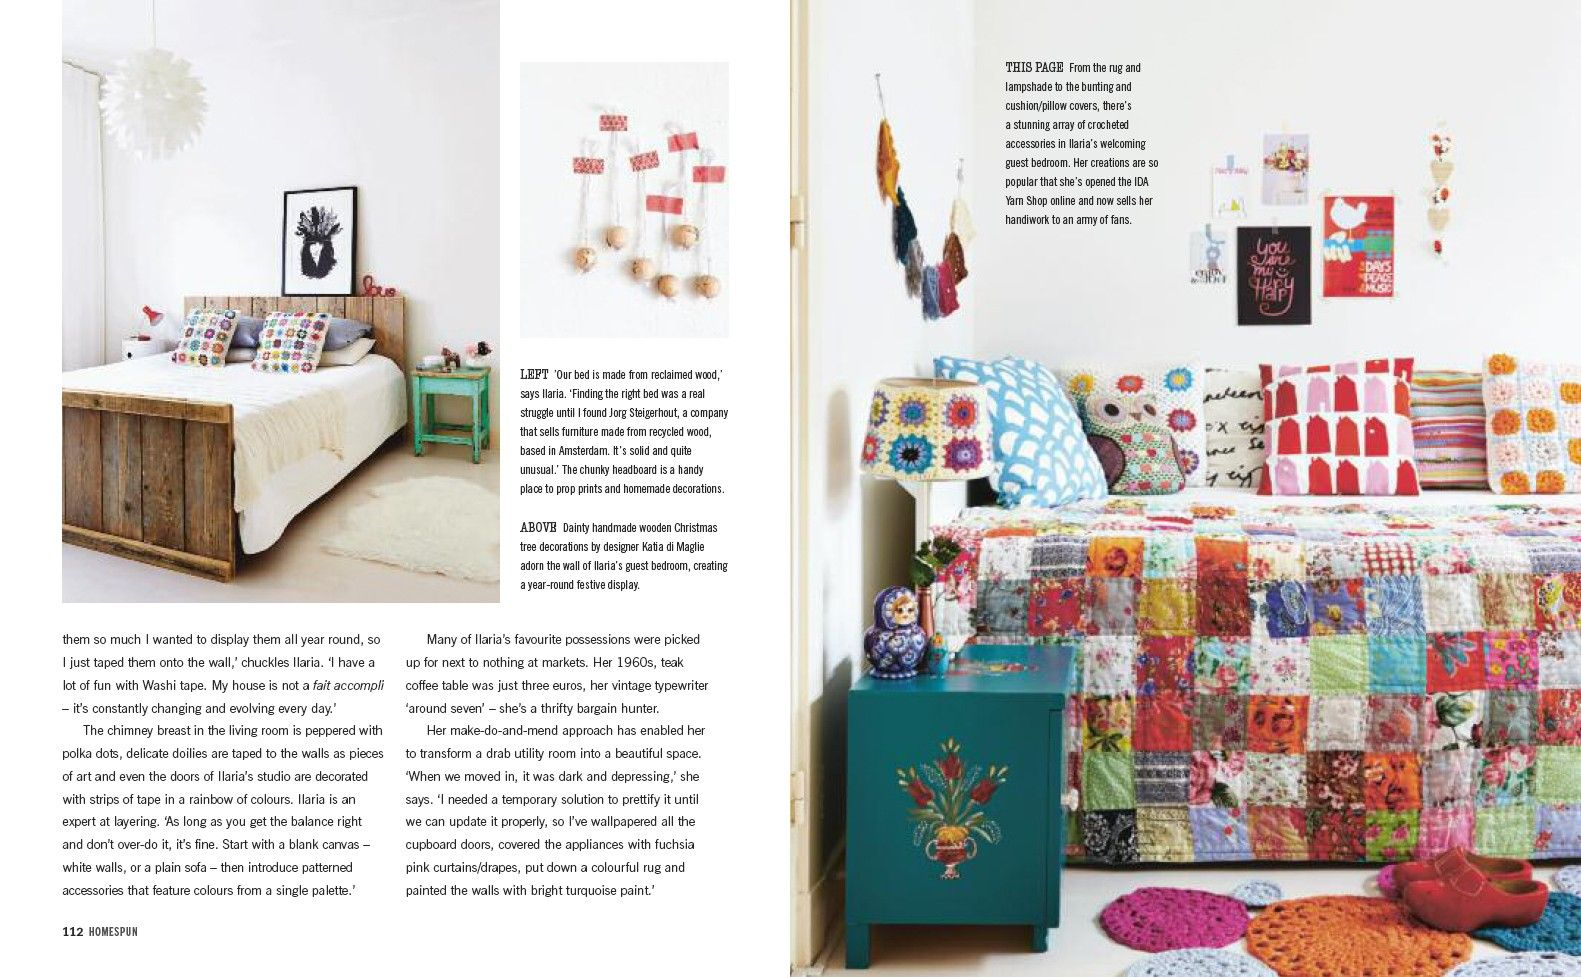 "camp cirrus cushions HAVET aqua and HUS red in new book ""design bloggers at home"" by ellie tennant. home of ilaria chiaratti bonomi / ida lifestyle."